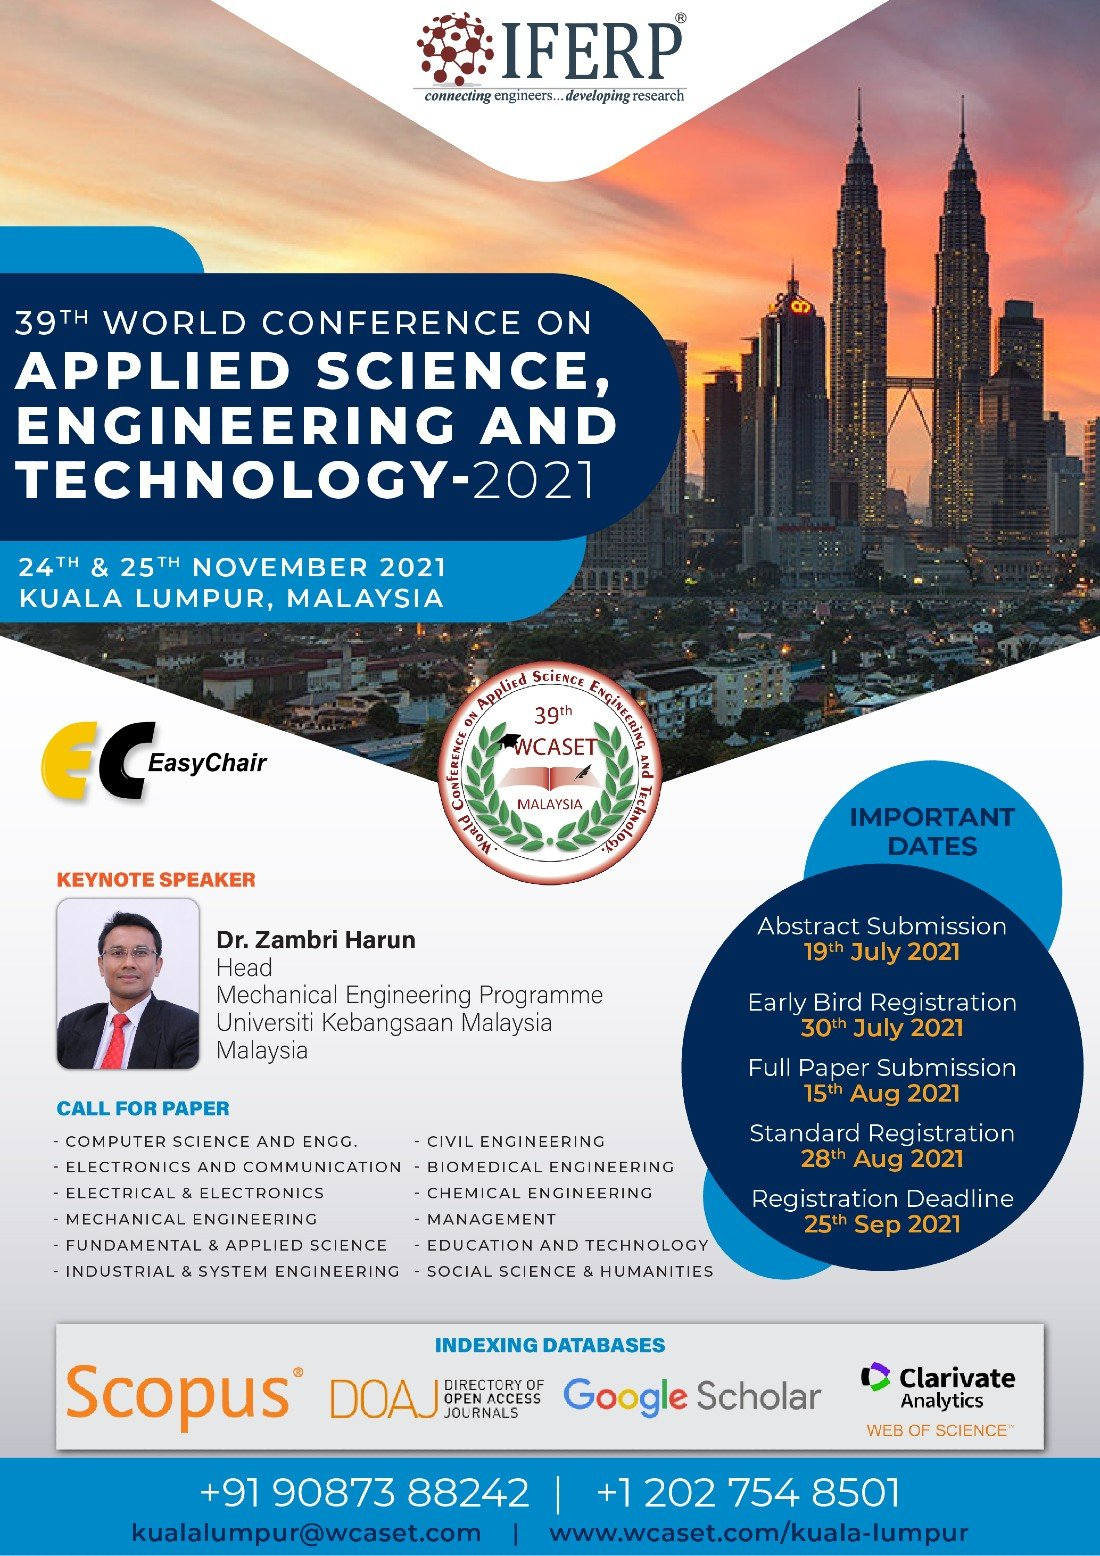 39th World Conference on Applied Science, Engineering & Technology, 24 November | Event in Kuala Lumpur